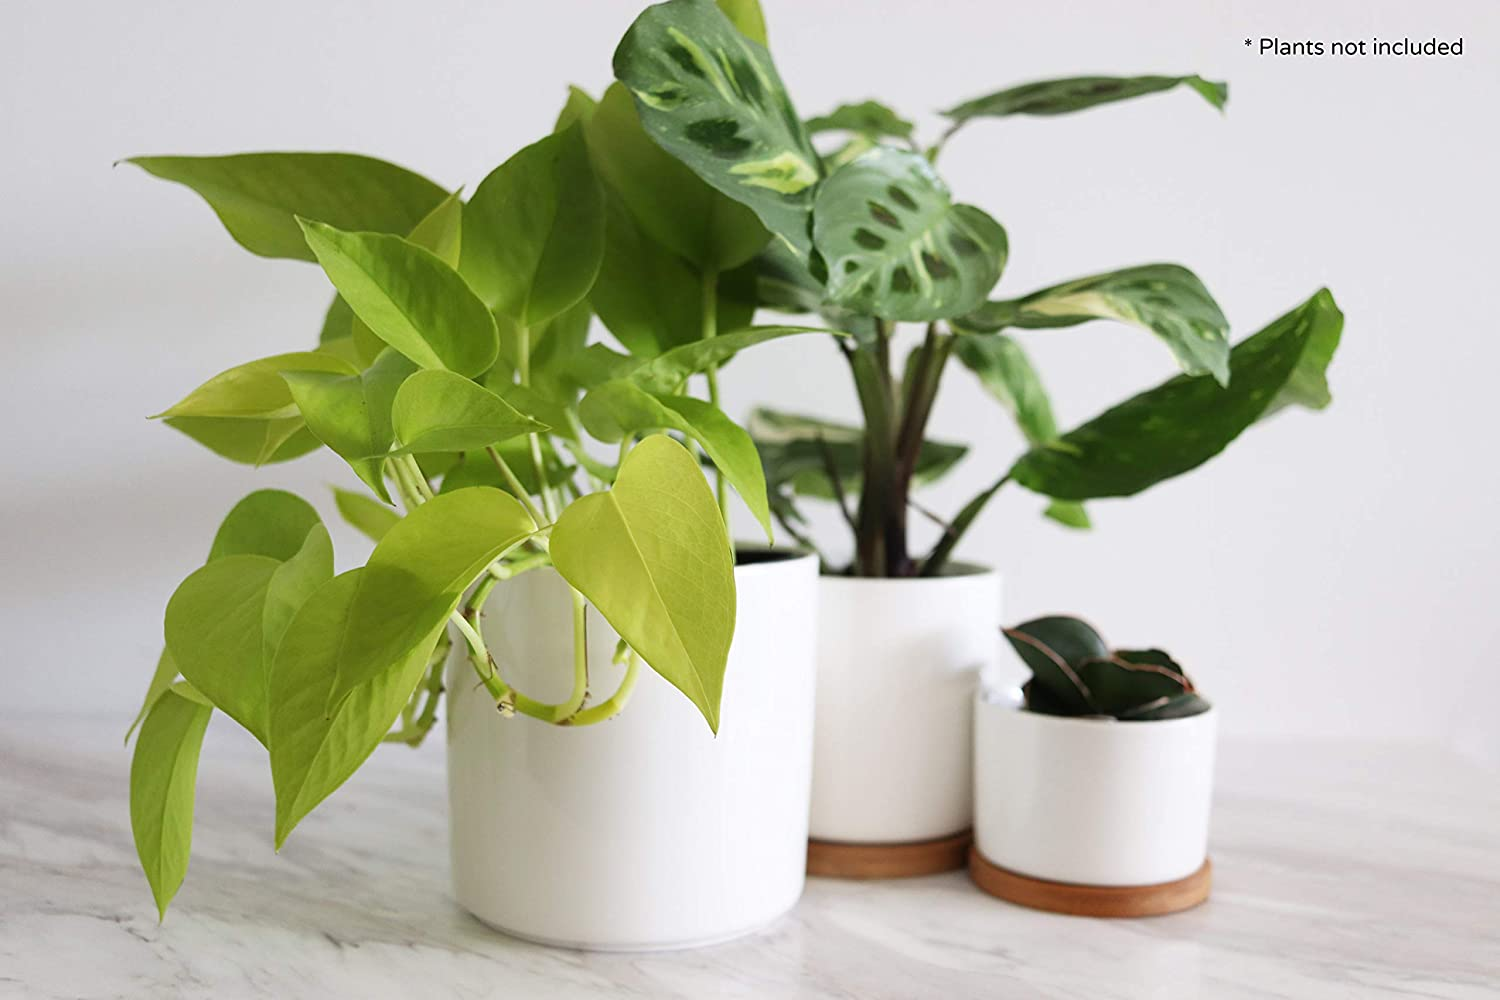 Crazy Plant Guy White Ceramic Indoor Plant Pots. 3 Piece Collection Set. Cylinder Plant Pots with Drainage Hole and Bamboo Saucers